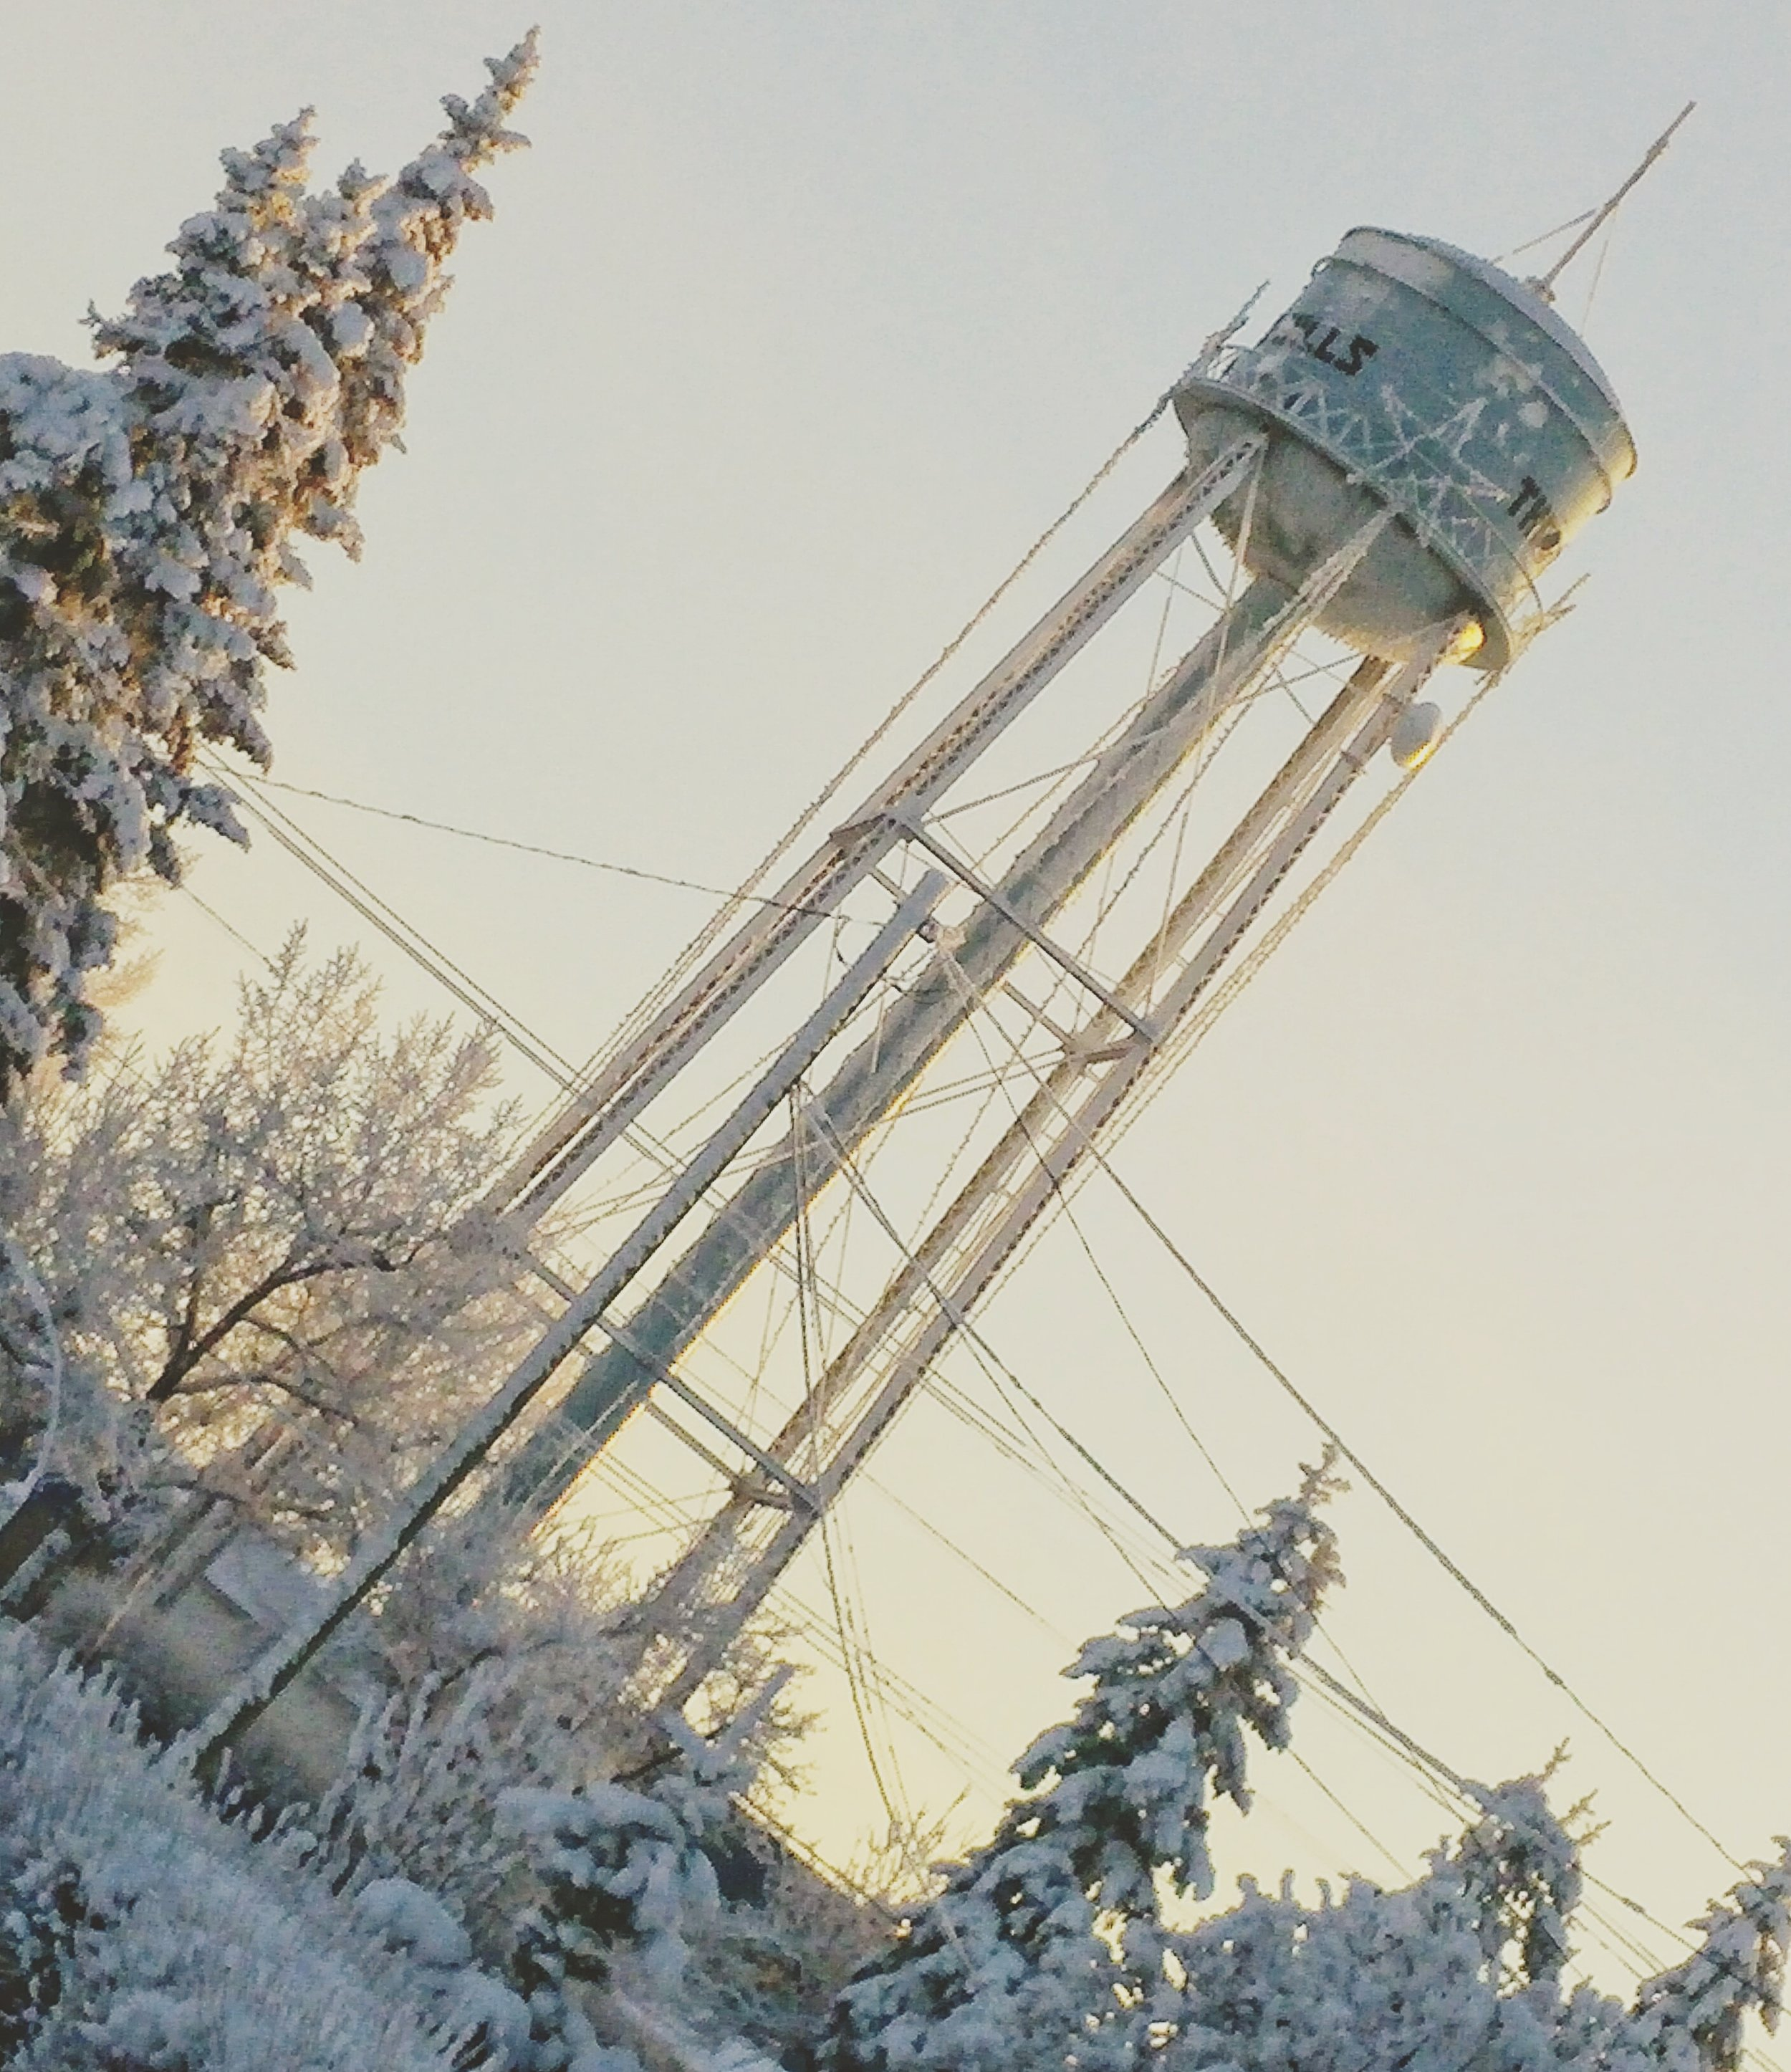 This water tower is the pinnacle of my small town of Three Hills, Alberta.